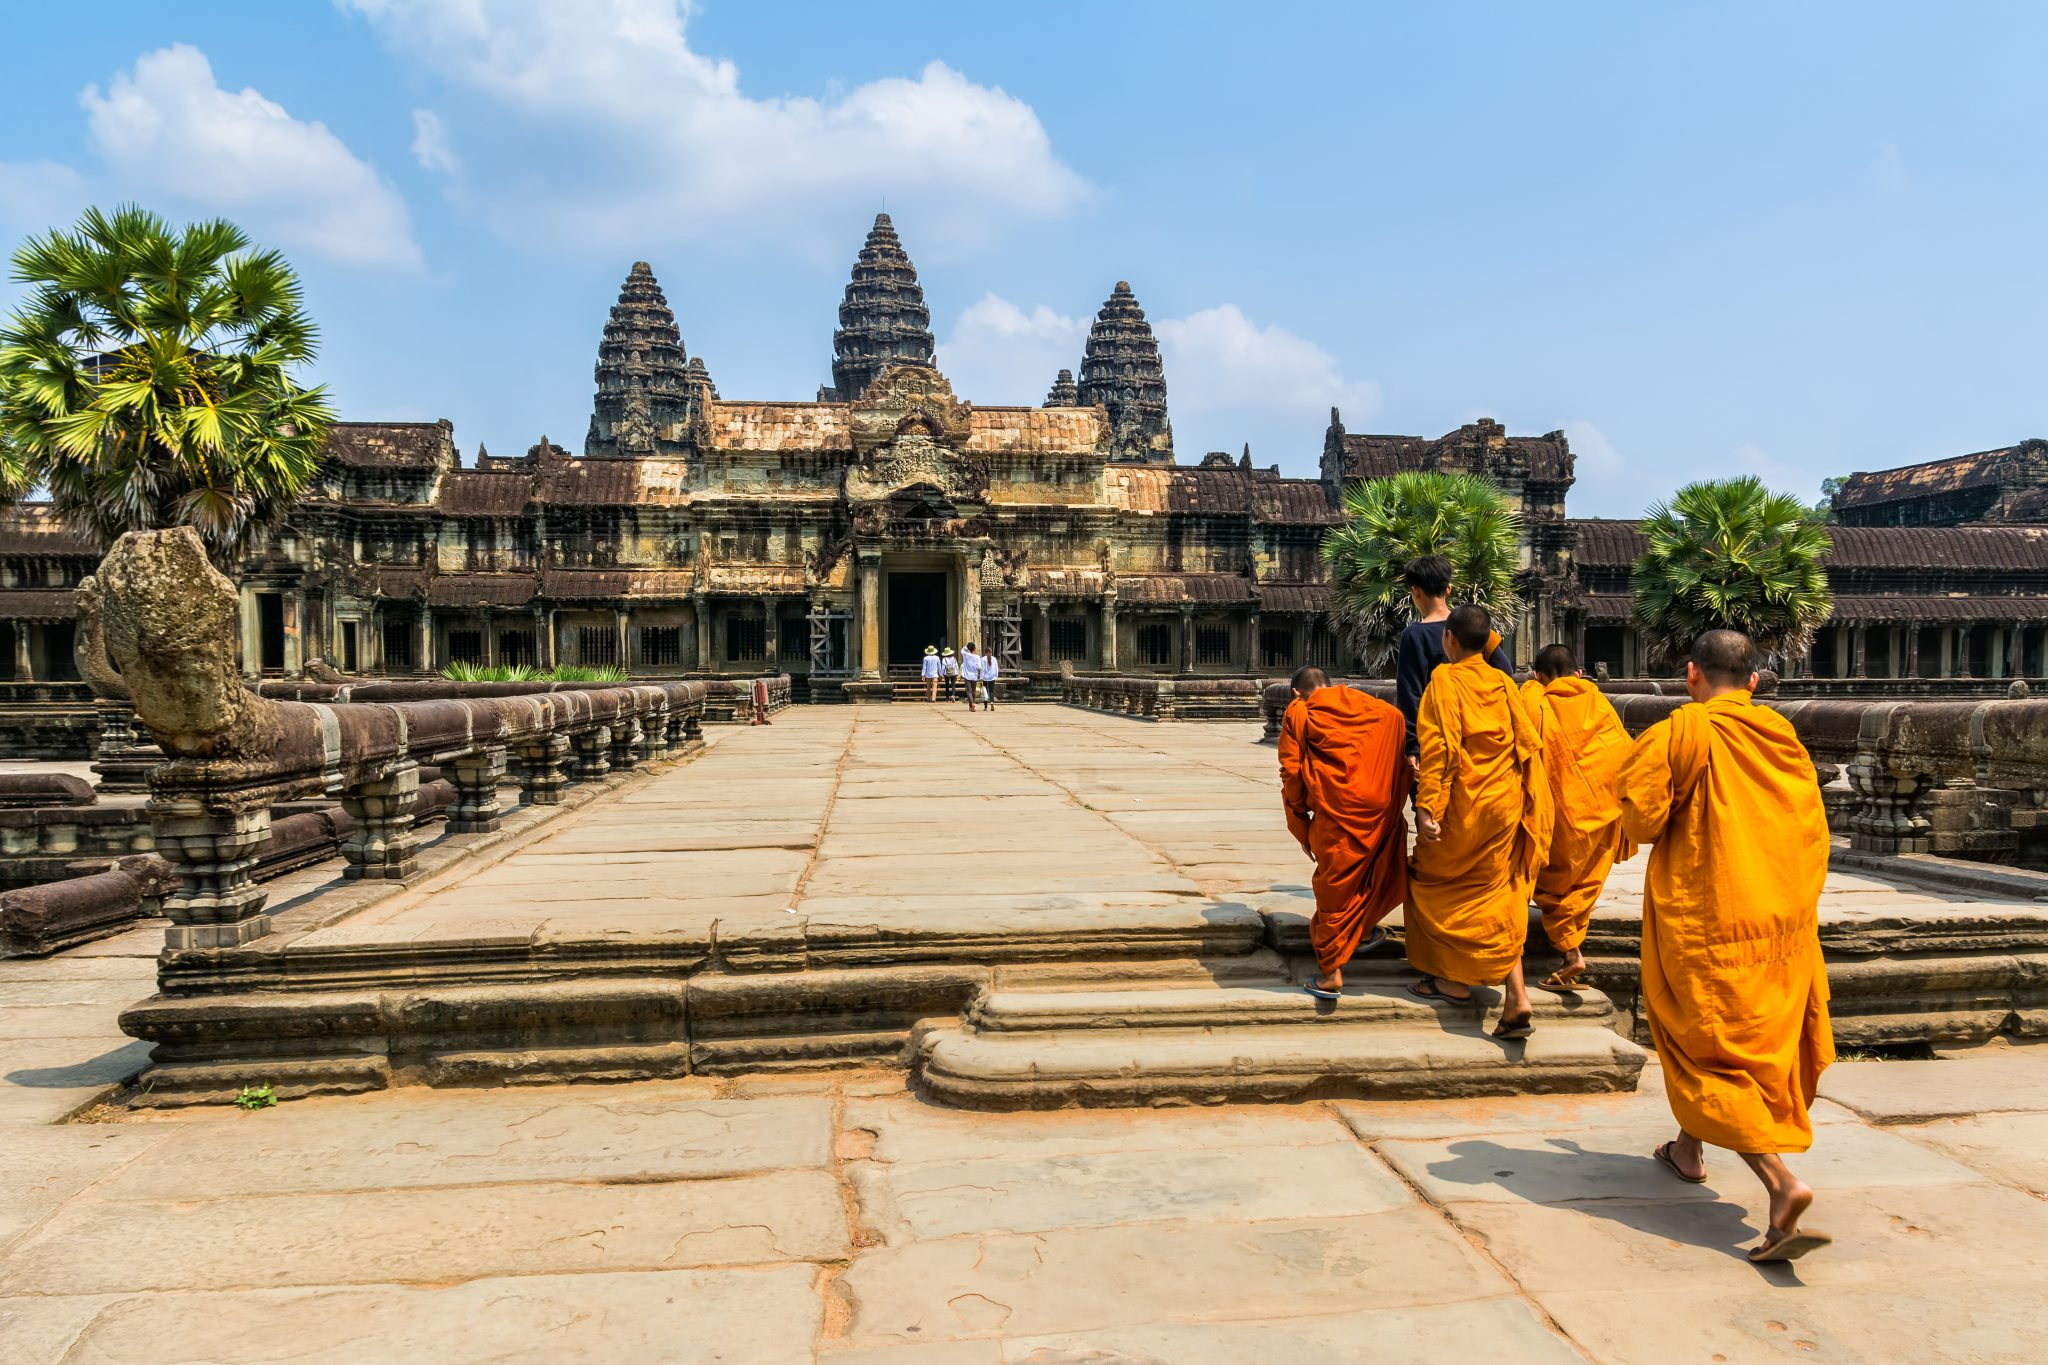 Angkor Wat Temple is the biggest faith-based structure in the world—appropriately scaled for something meant to symbolize the Universe. Visit SoutheastAsia.